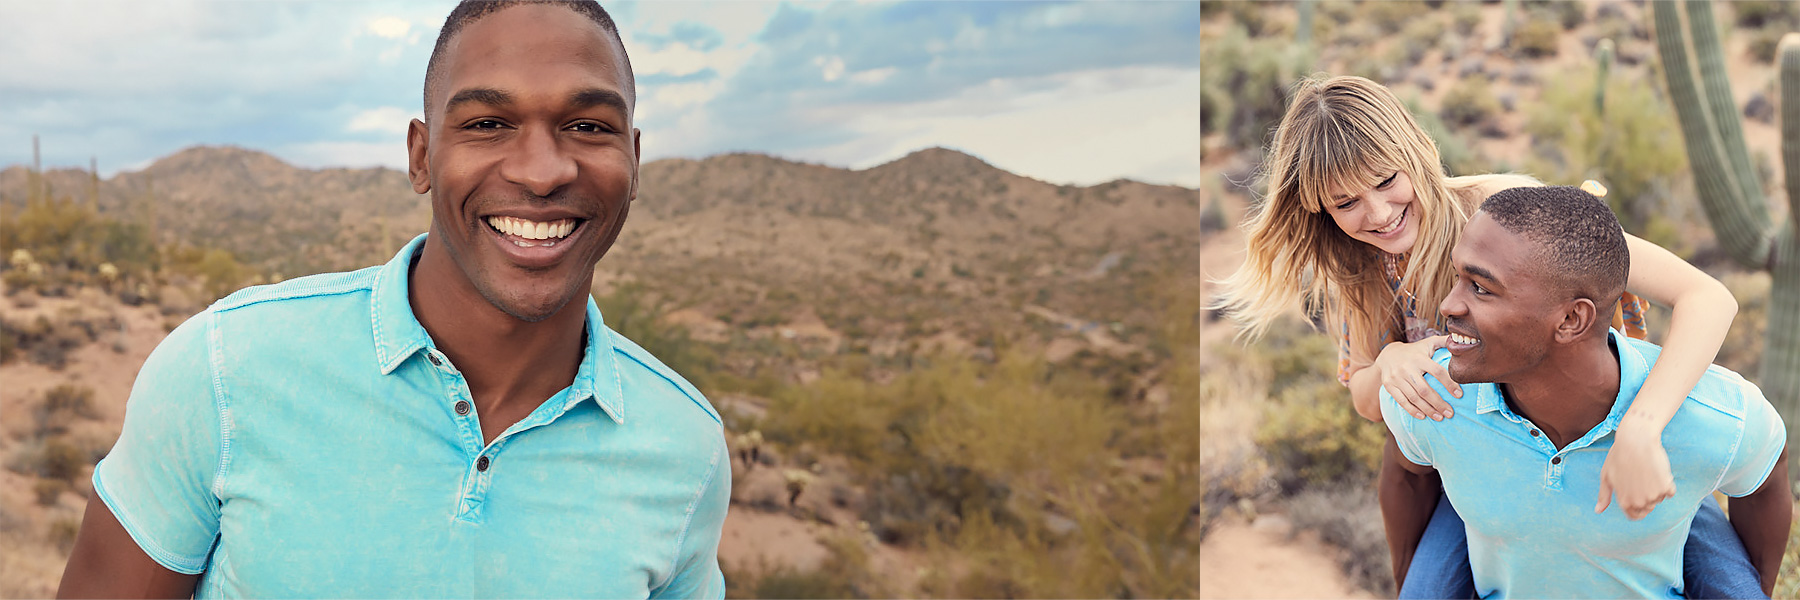 Guy wearing a turquoise polo walking in the desert